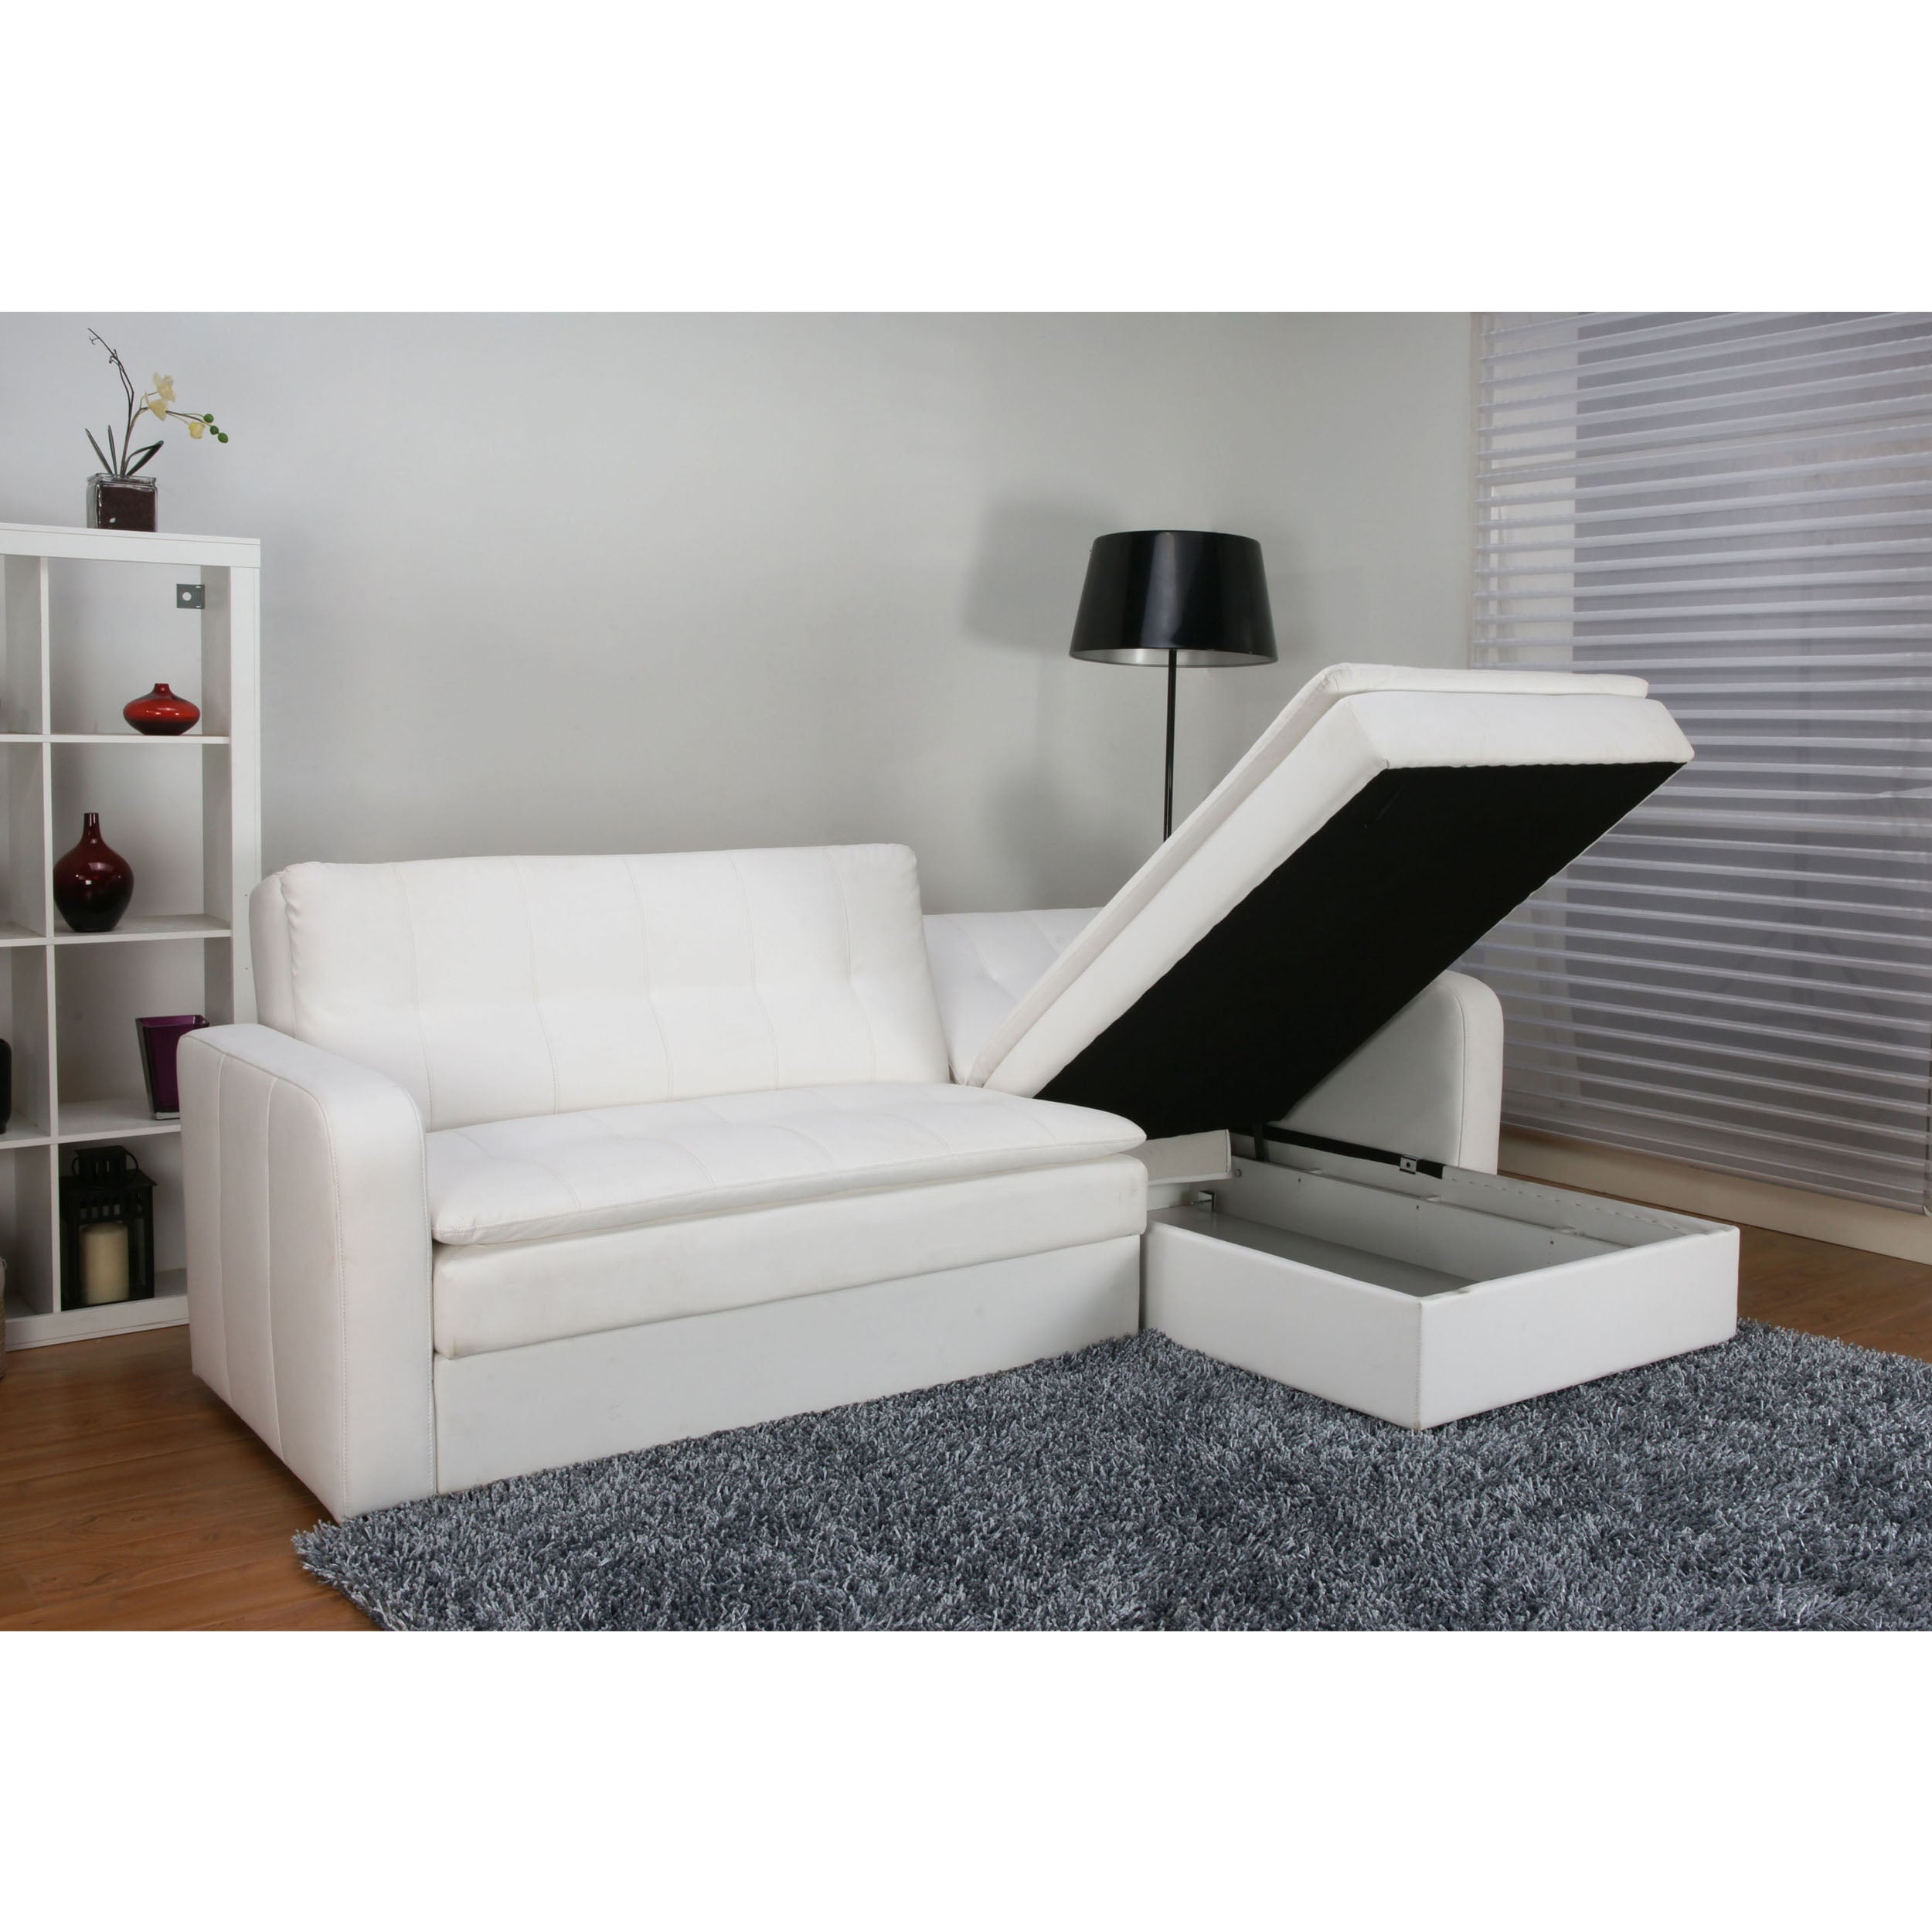 Denver White Double Cushion Storage Sectional Sofa Bed